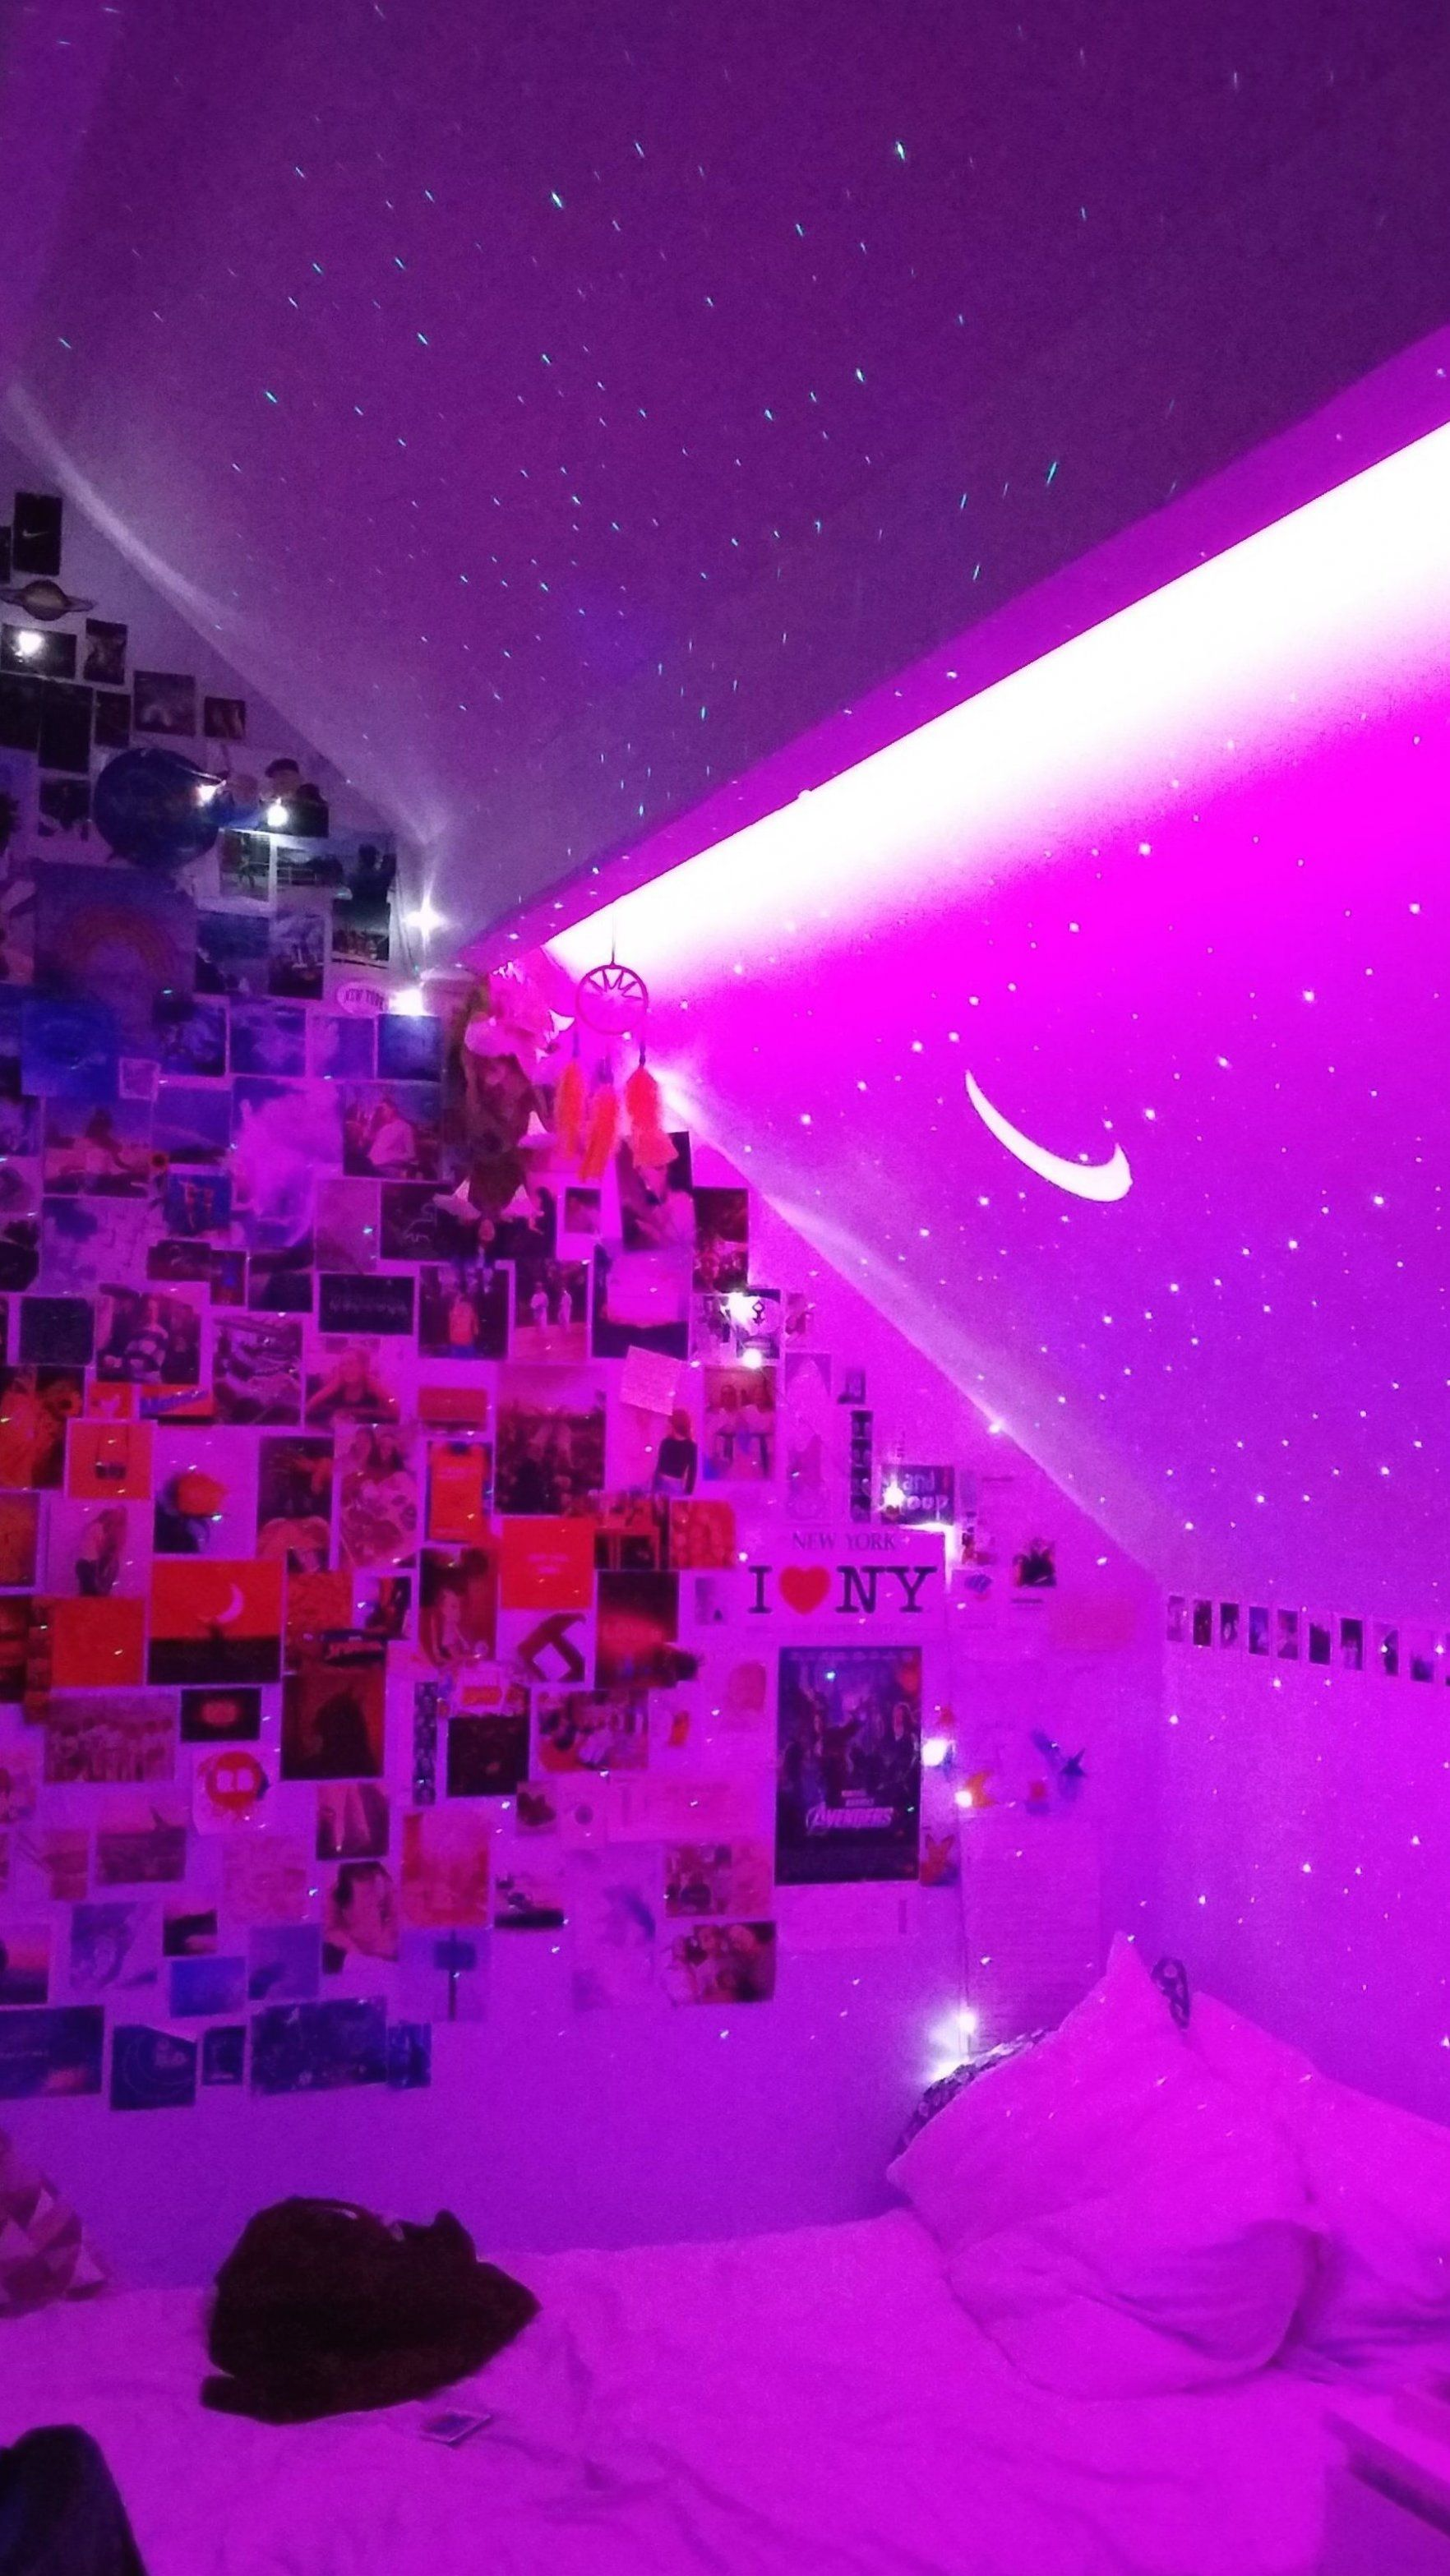 9 Best Of Cute Aesthetic Led Light Room Hd Image Size The style of your bedroom determines how comfortable you feel. 9 best of cute aesthetic led light room